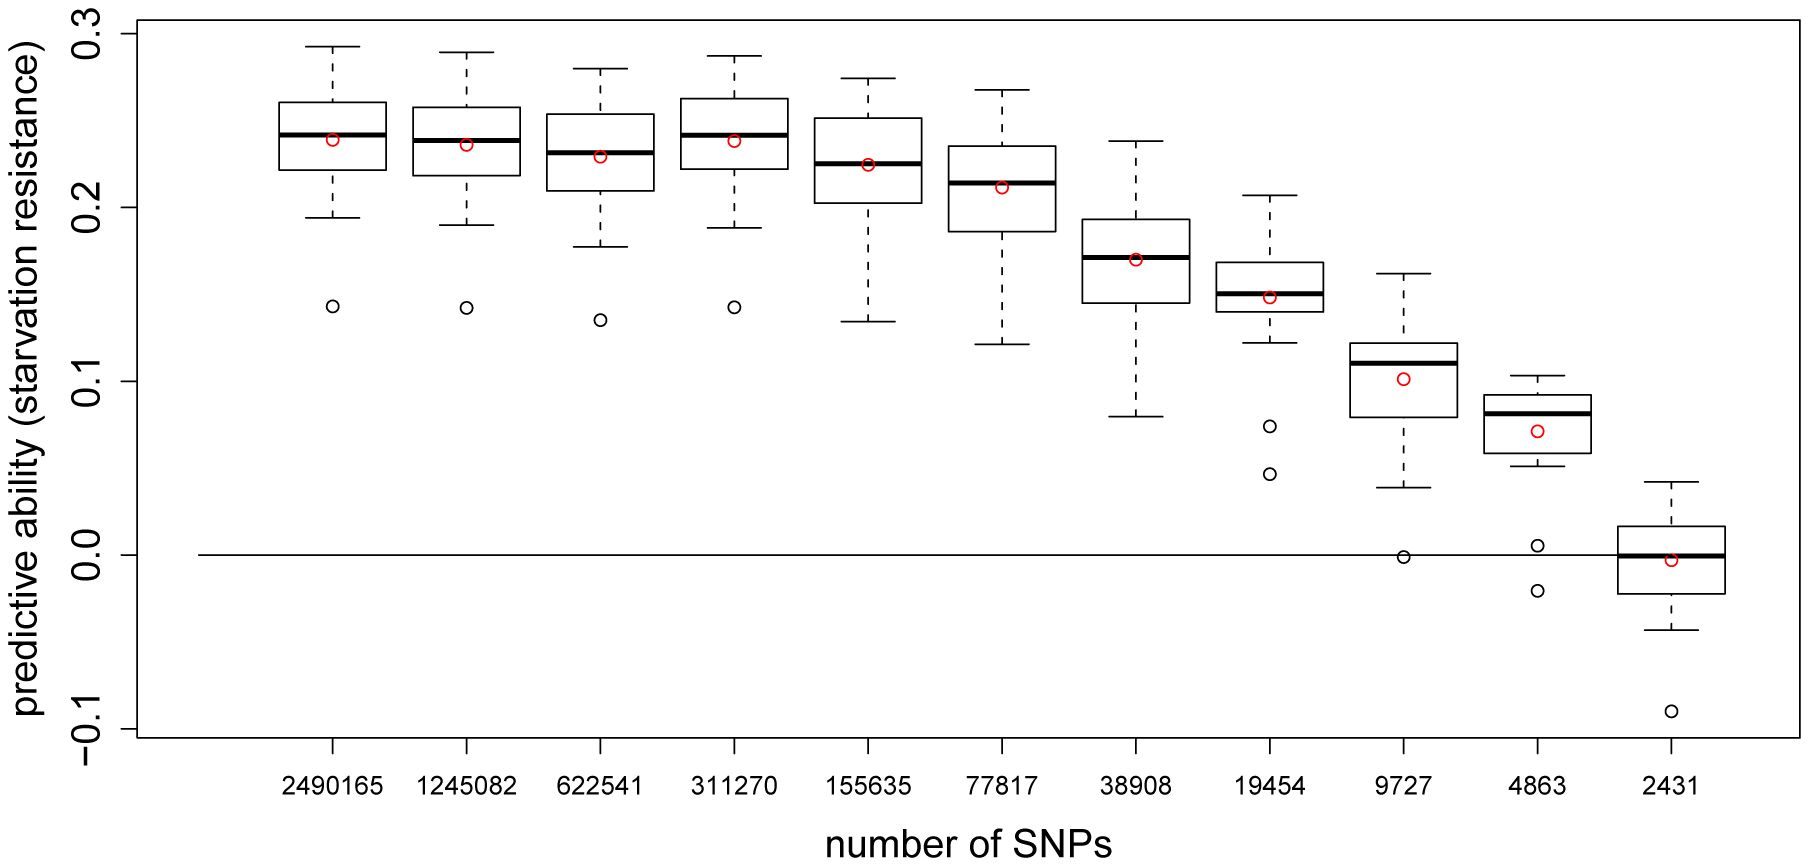 Predictive ability of 5-fold CV with GBLUP for starvation resistance using different numbers of SNPs.